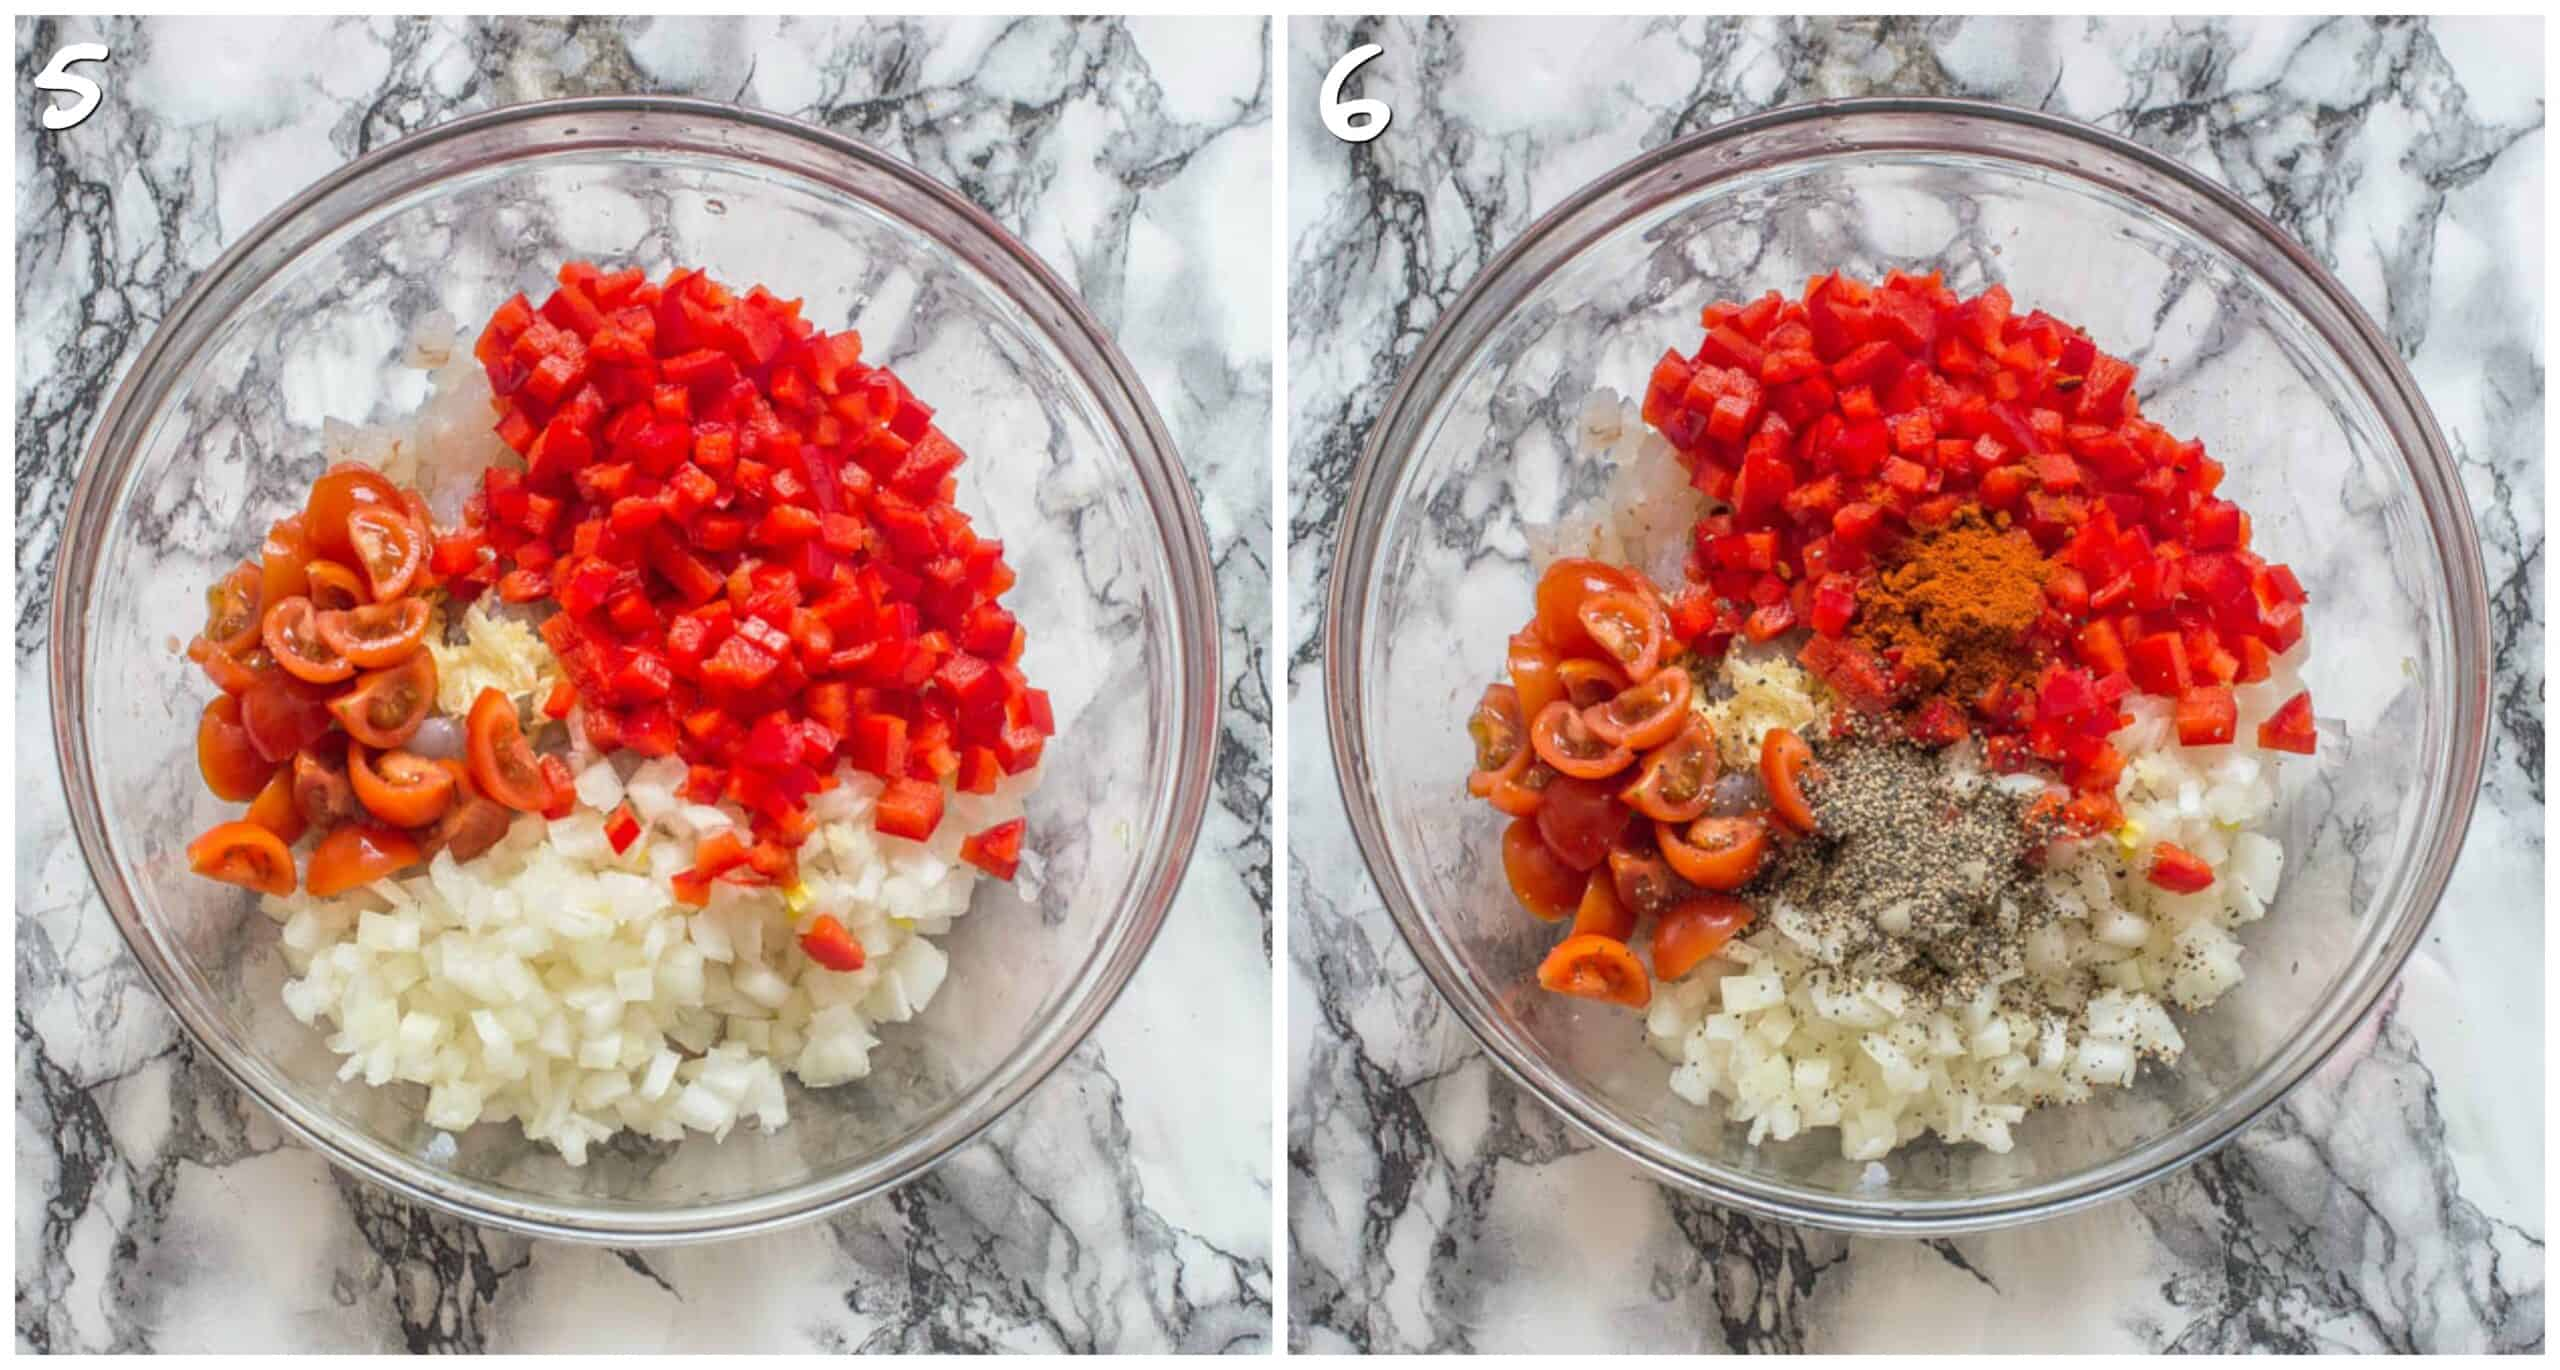 steps 5-6 adding tomatoes and spices